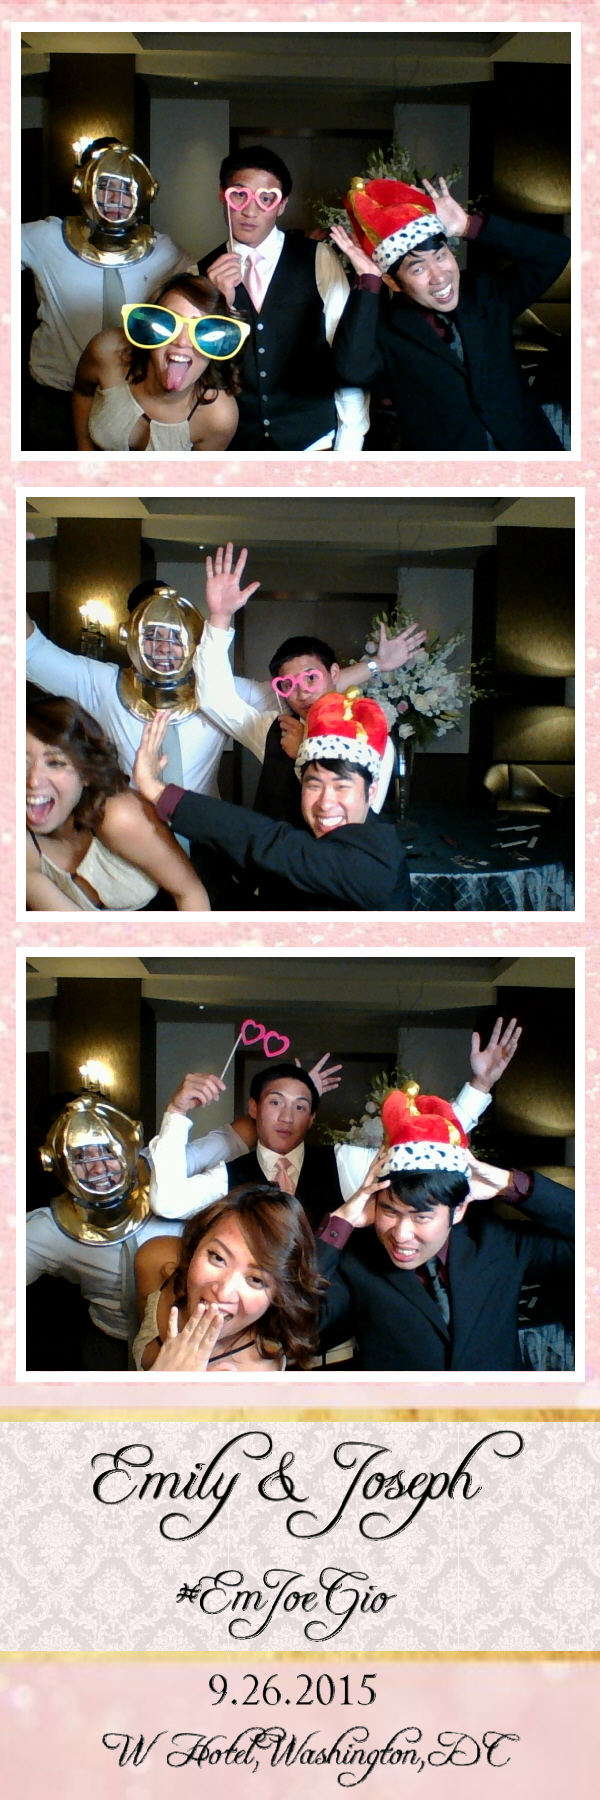 Guest House Events Photo Booth E&J (35).jpg